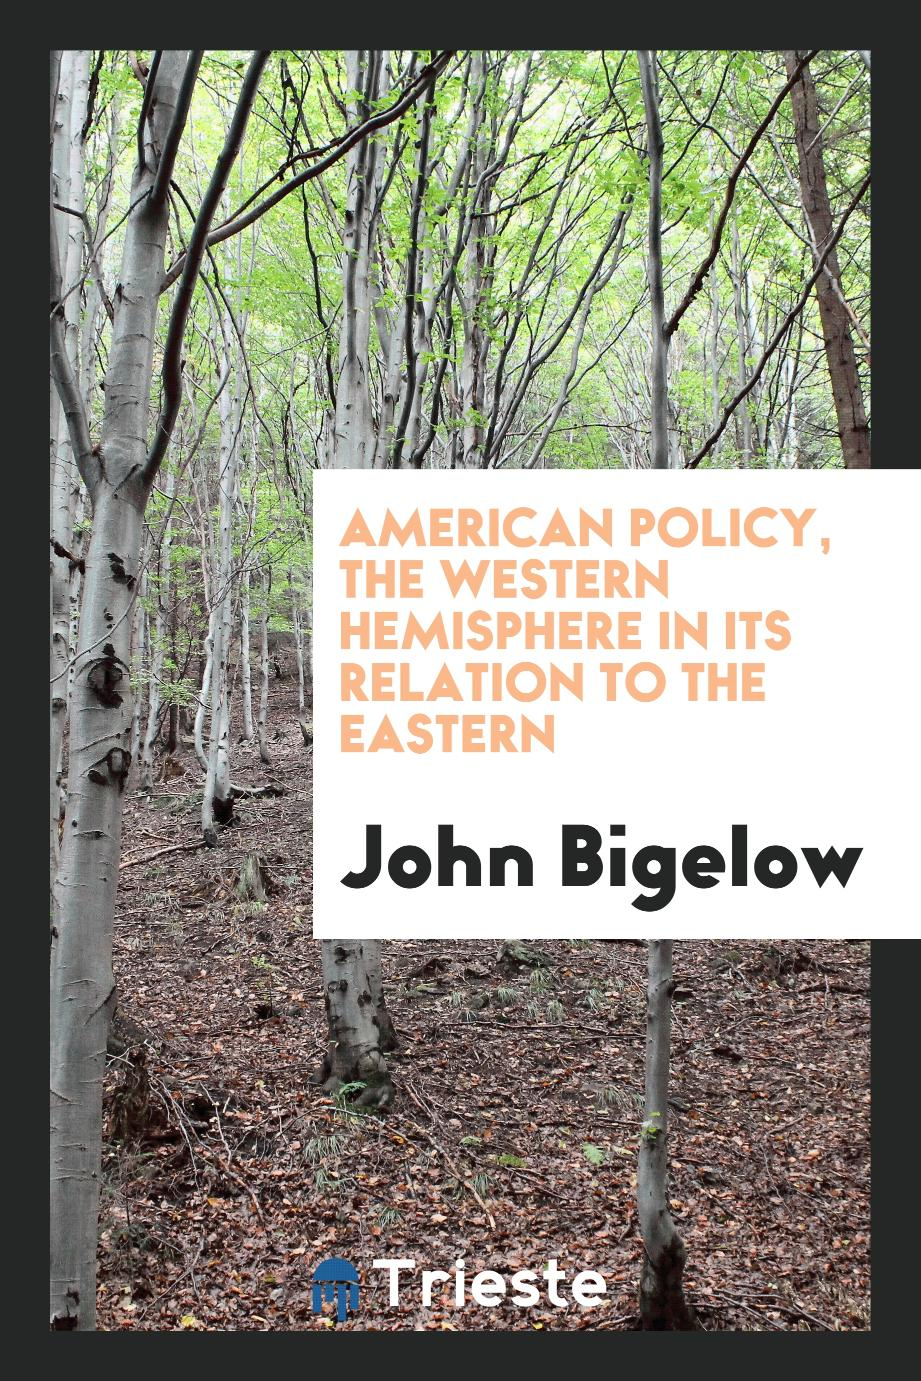 American policy, the western hemisphere in its relation to the eastern